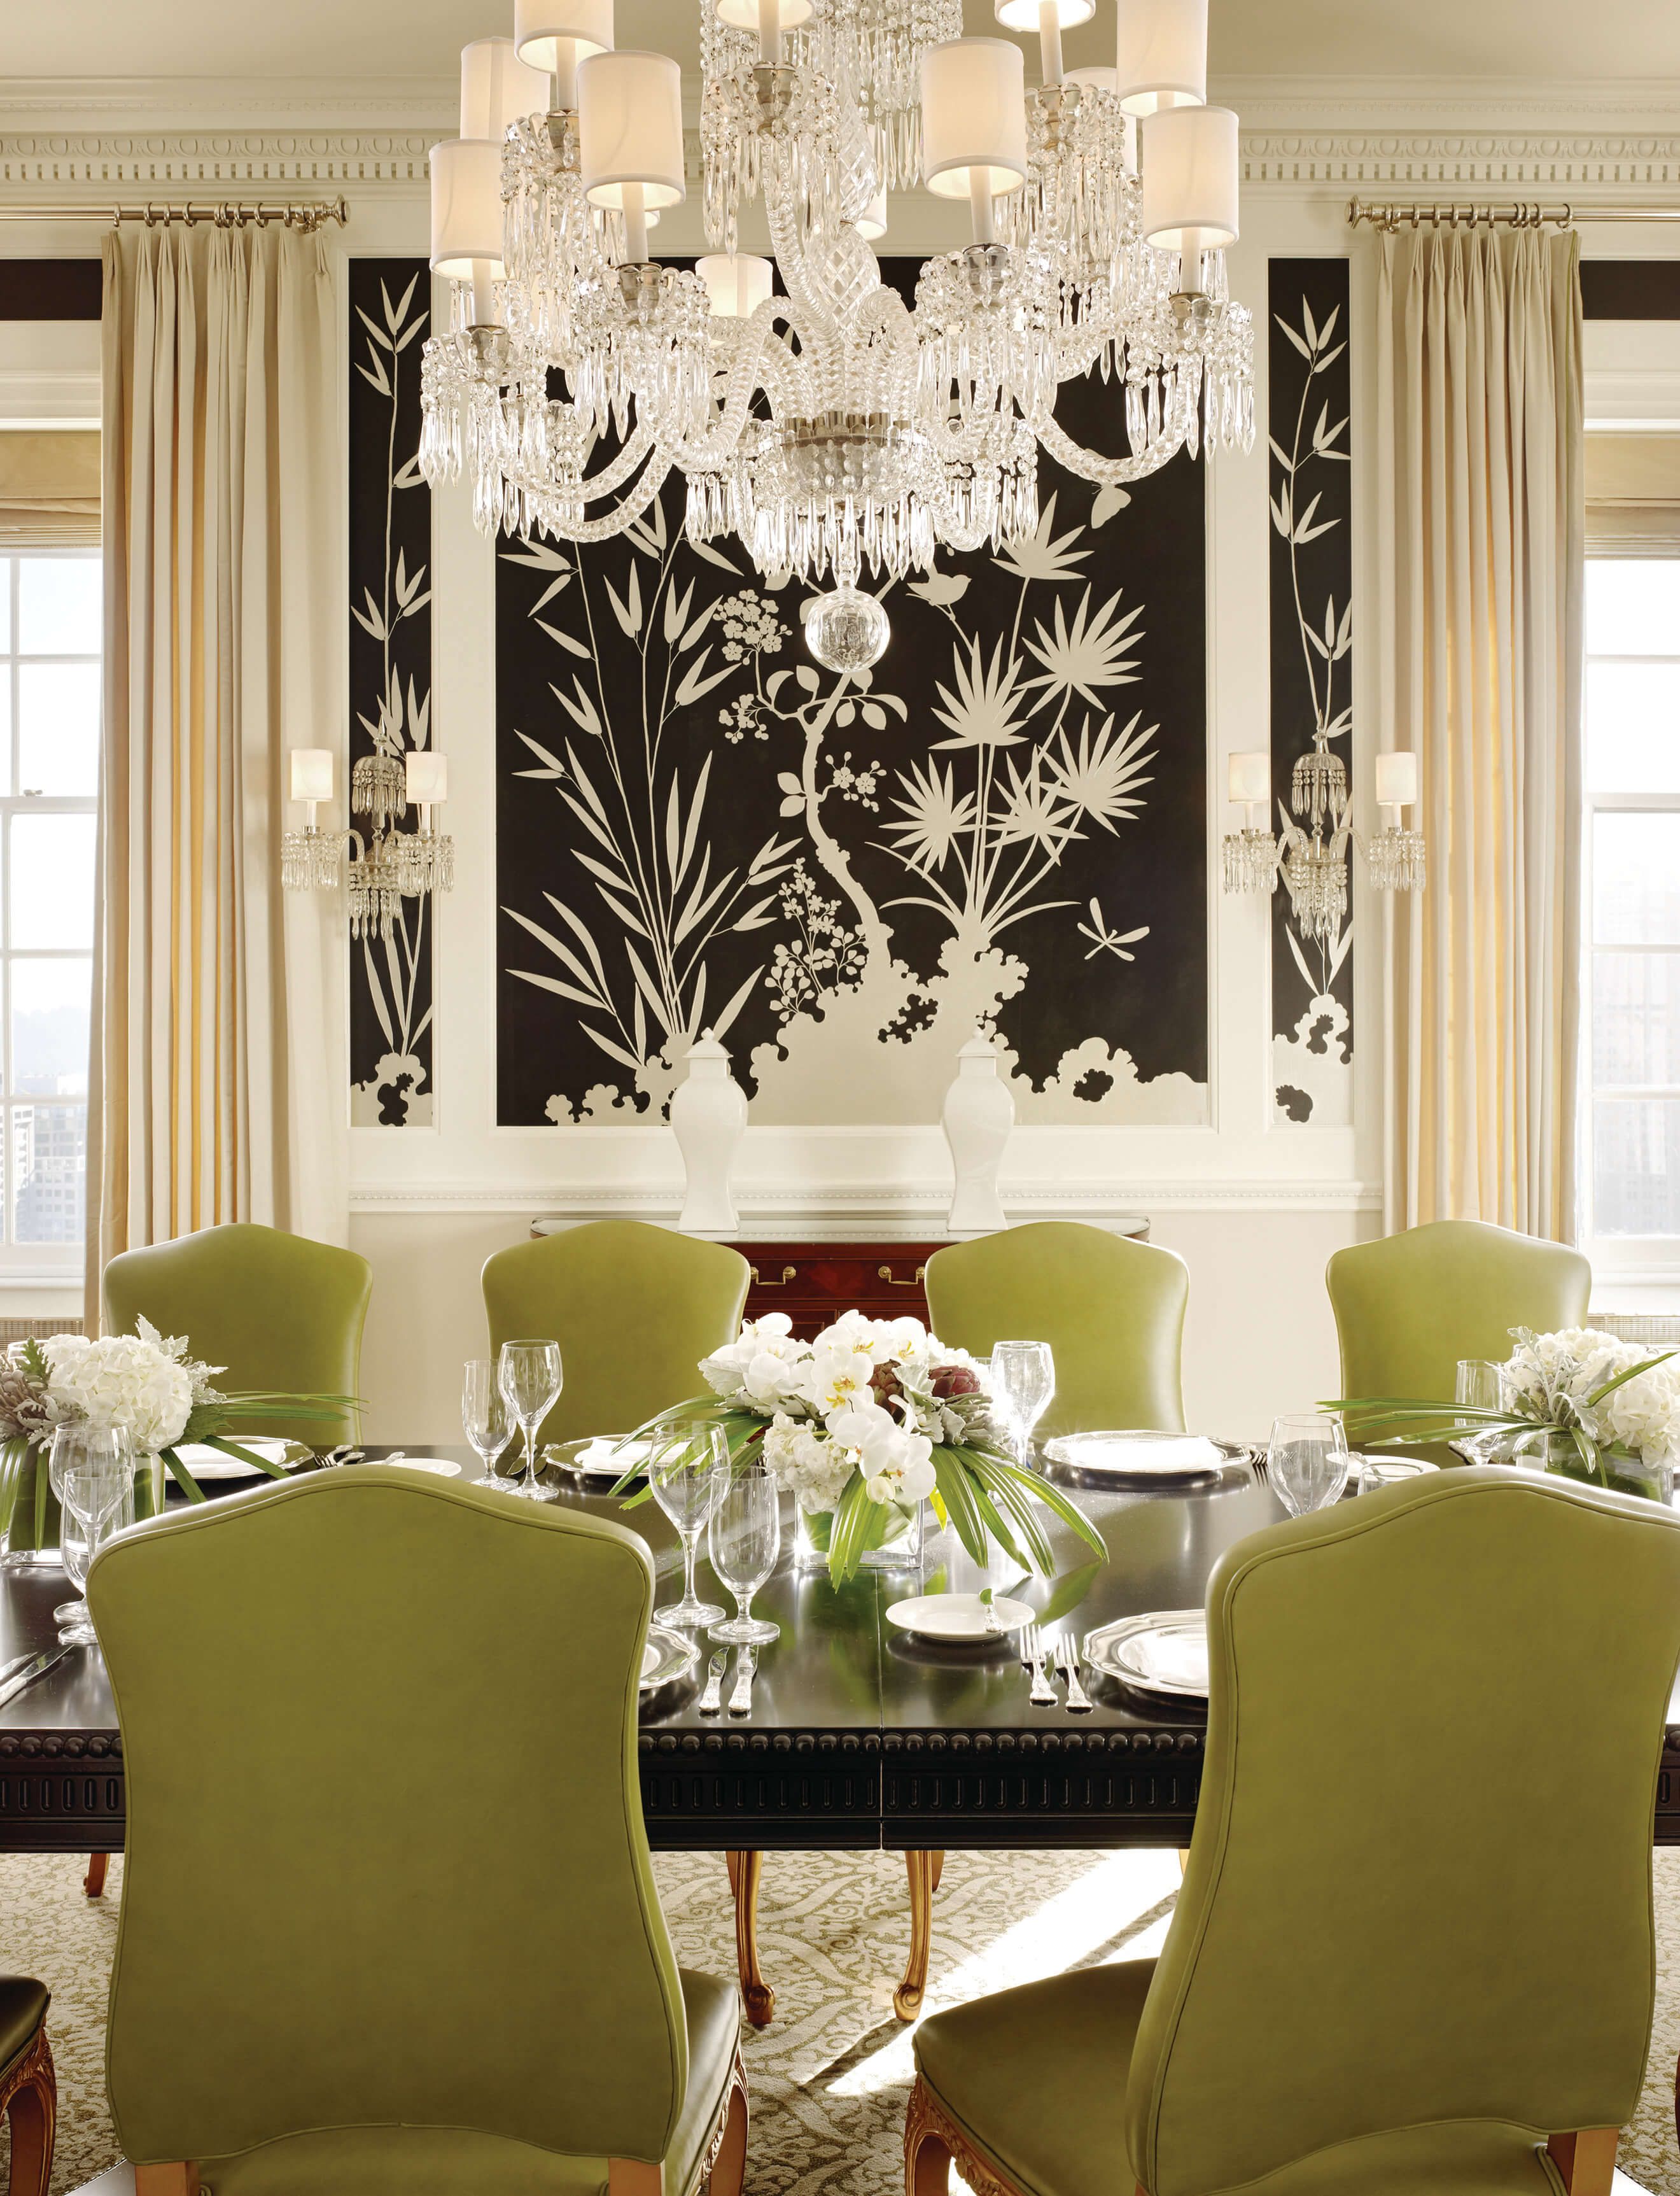 Fairmont san francisco penthouse dining room 1 for Dining room ideas green